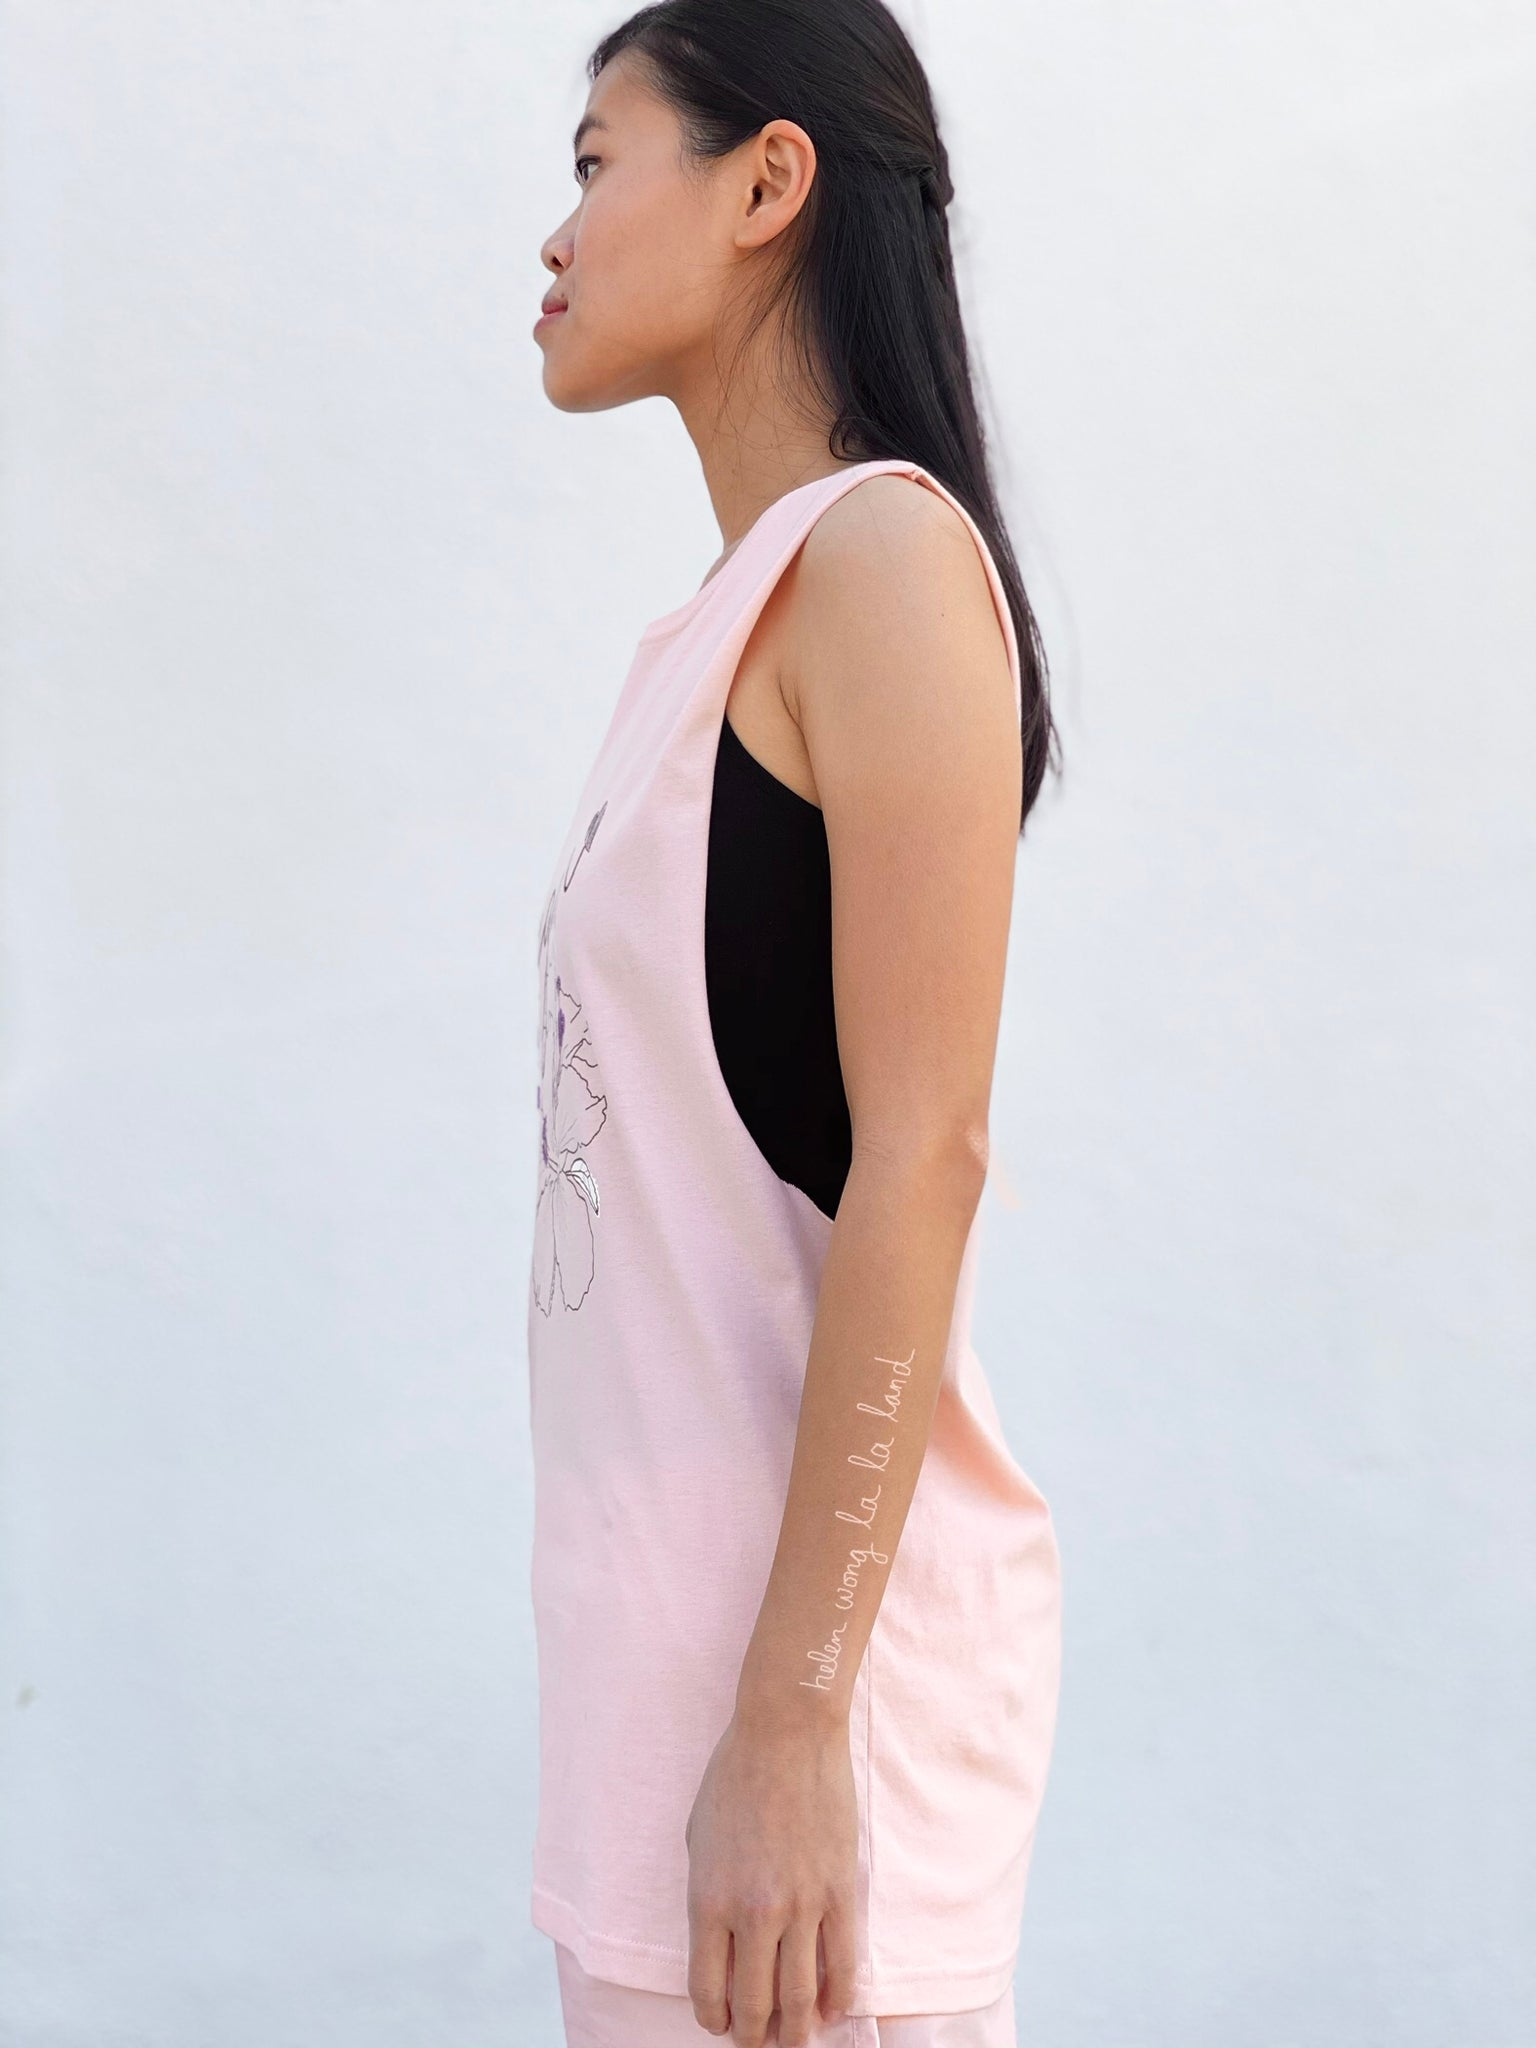 (S/S 2020) ✌🏼Vegan Hawaii sleeveless tee in PALE CORAL PINK